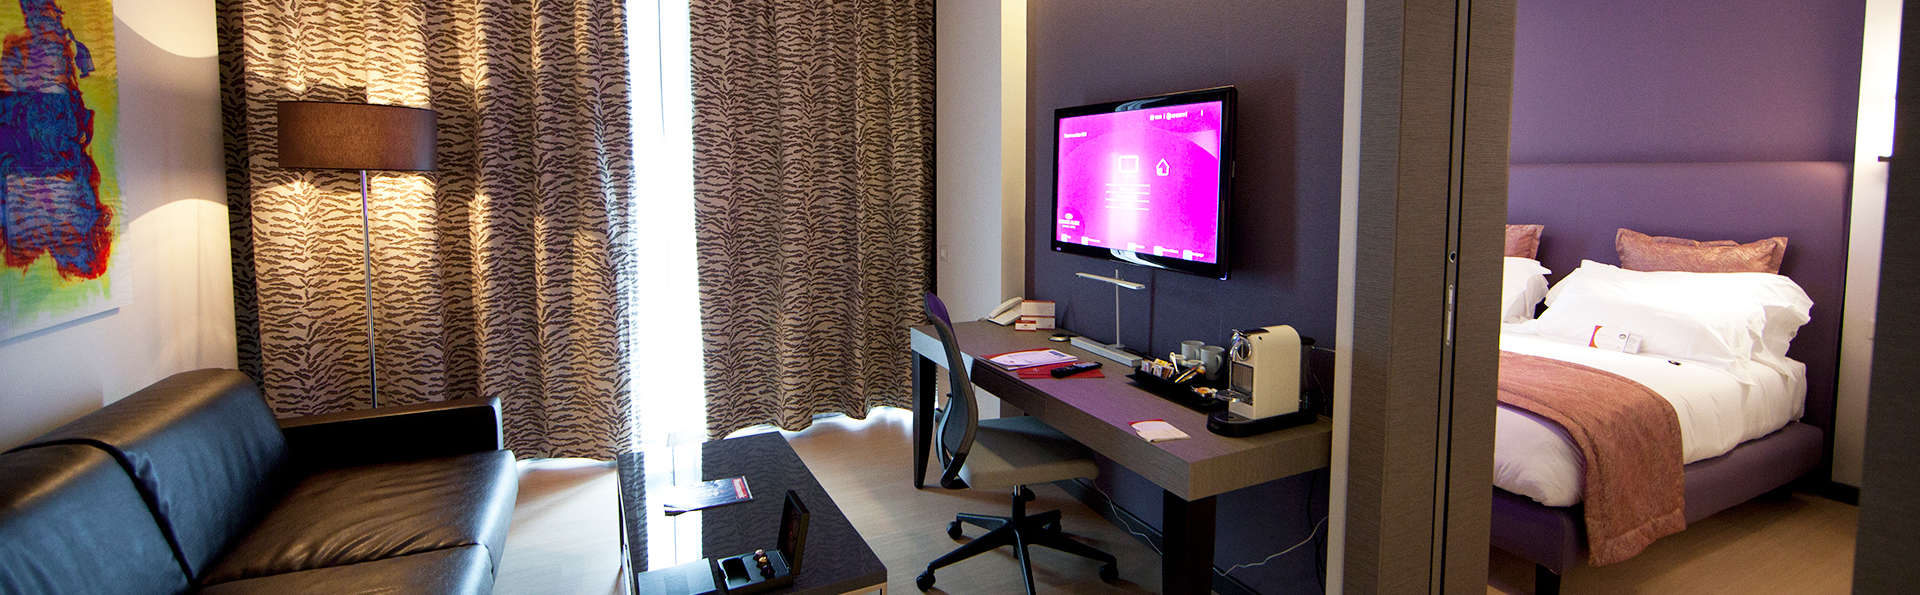 Crowne Plaza Verona - edit_room6.jpg